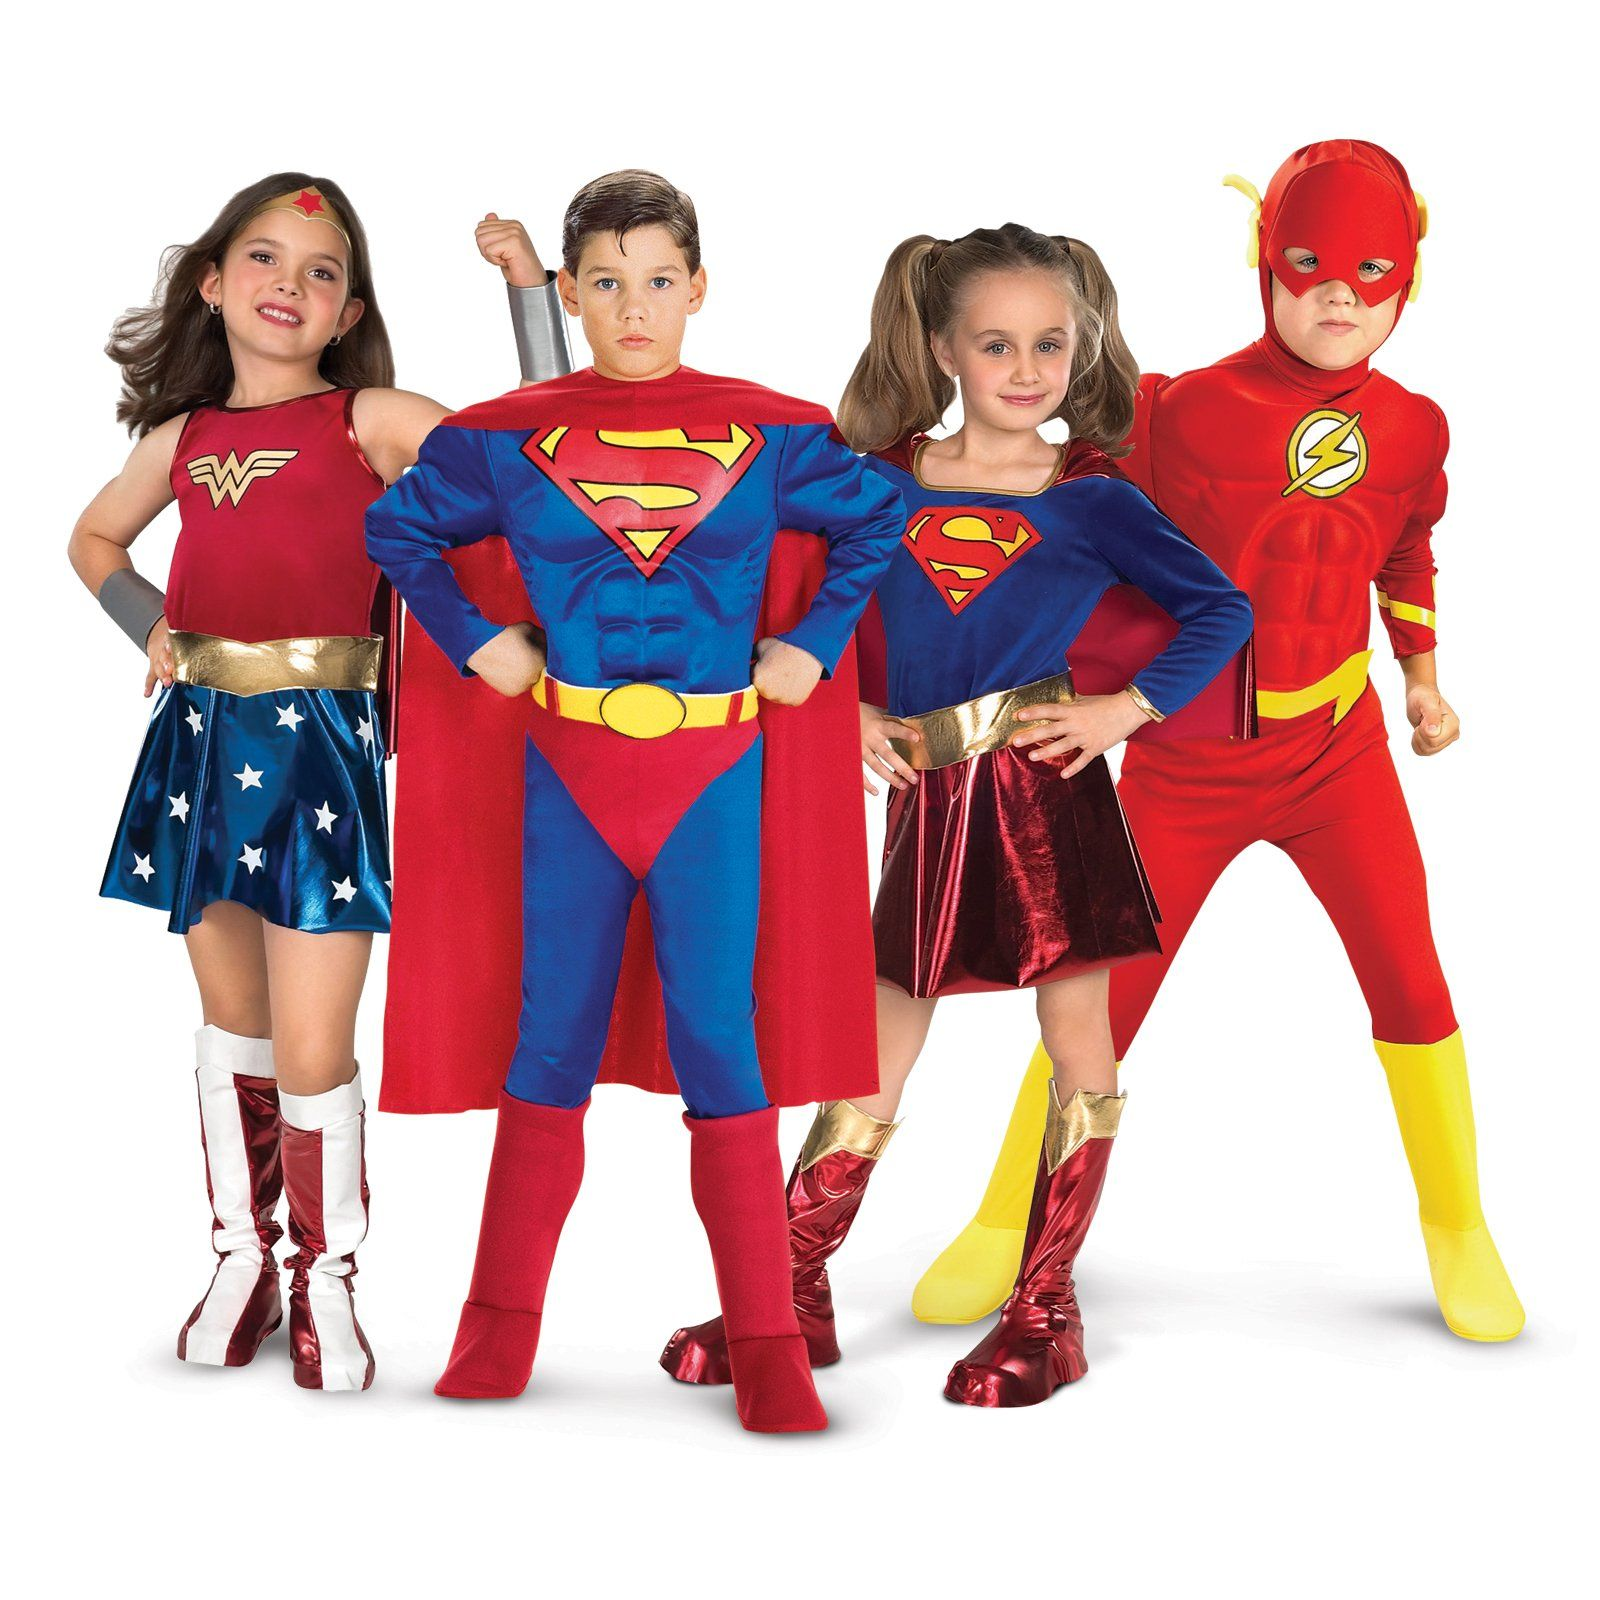 Invite All The Kids To Come Dressed Up As Their Favorite